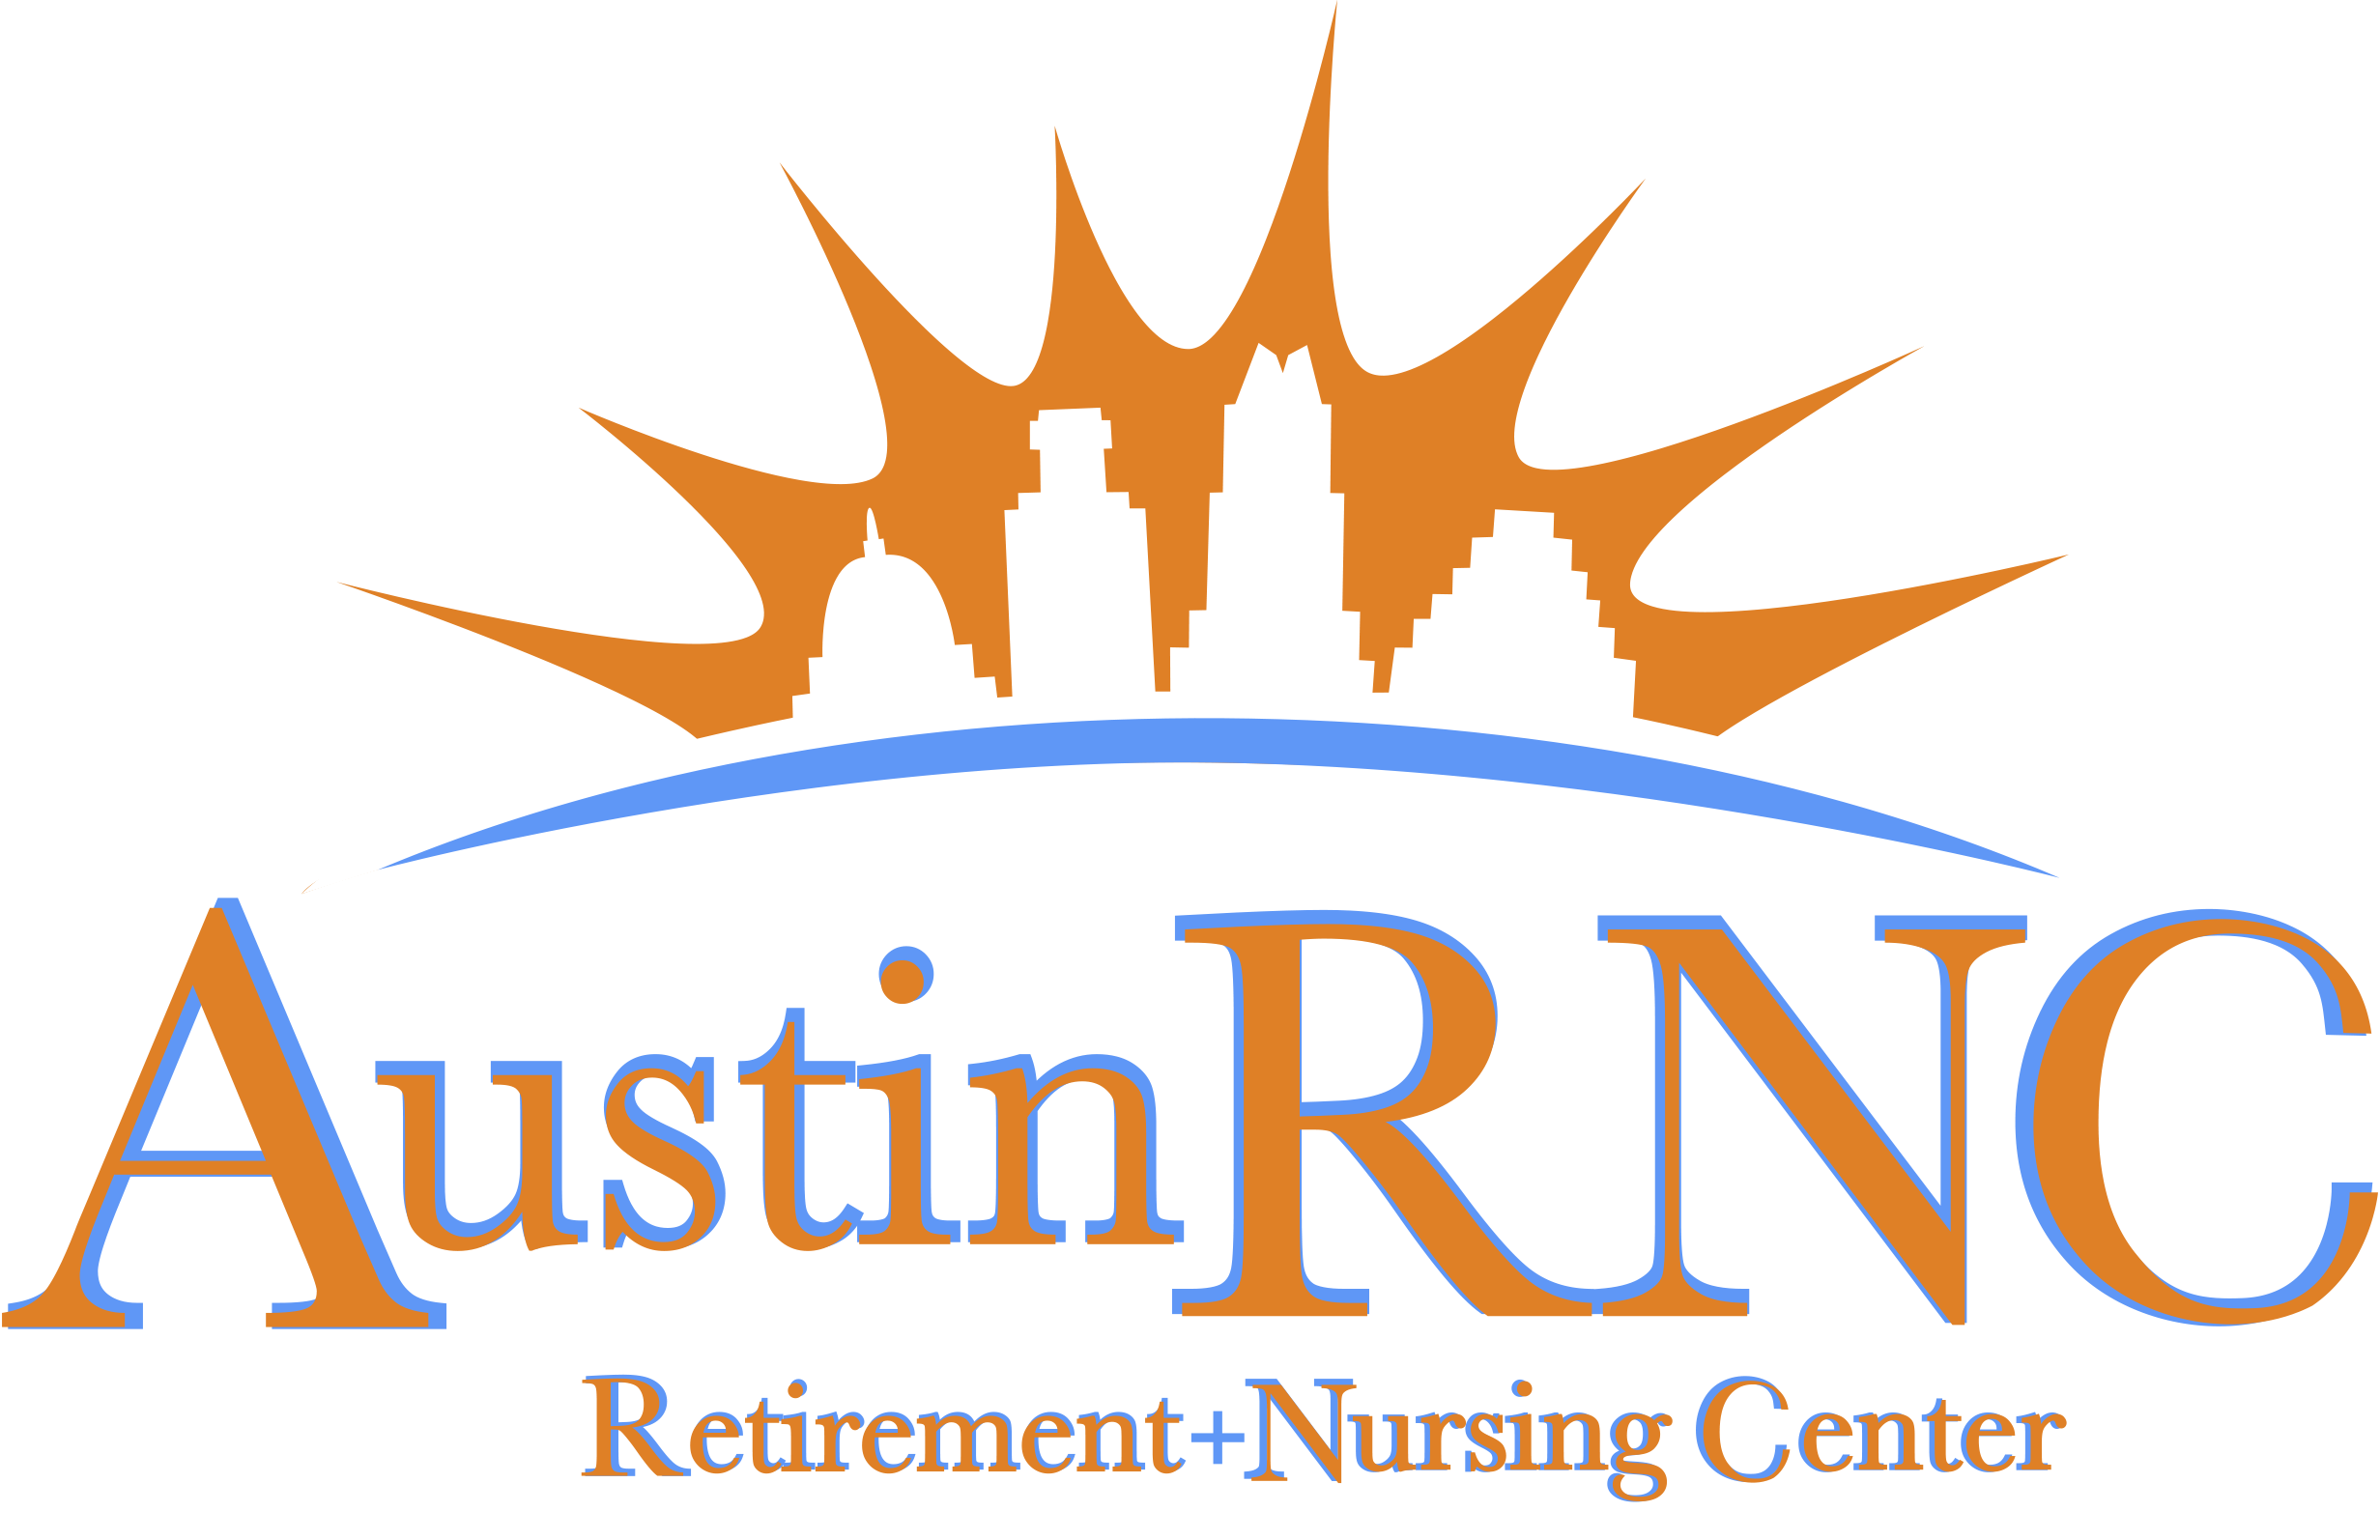 Austin Retirement & Nursing Center